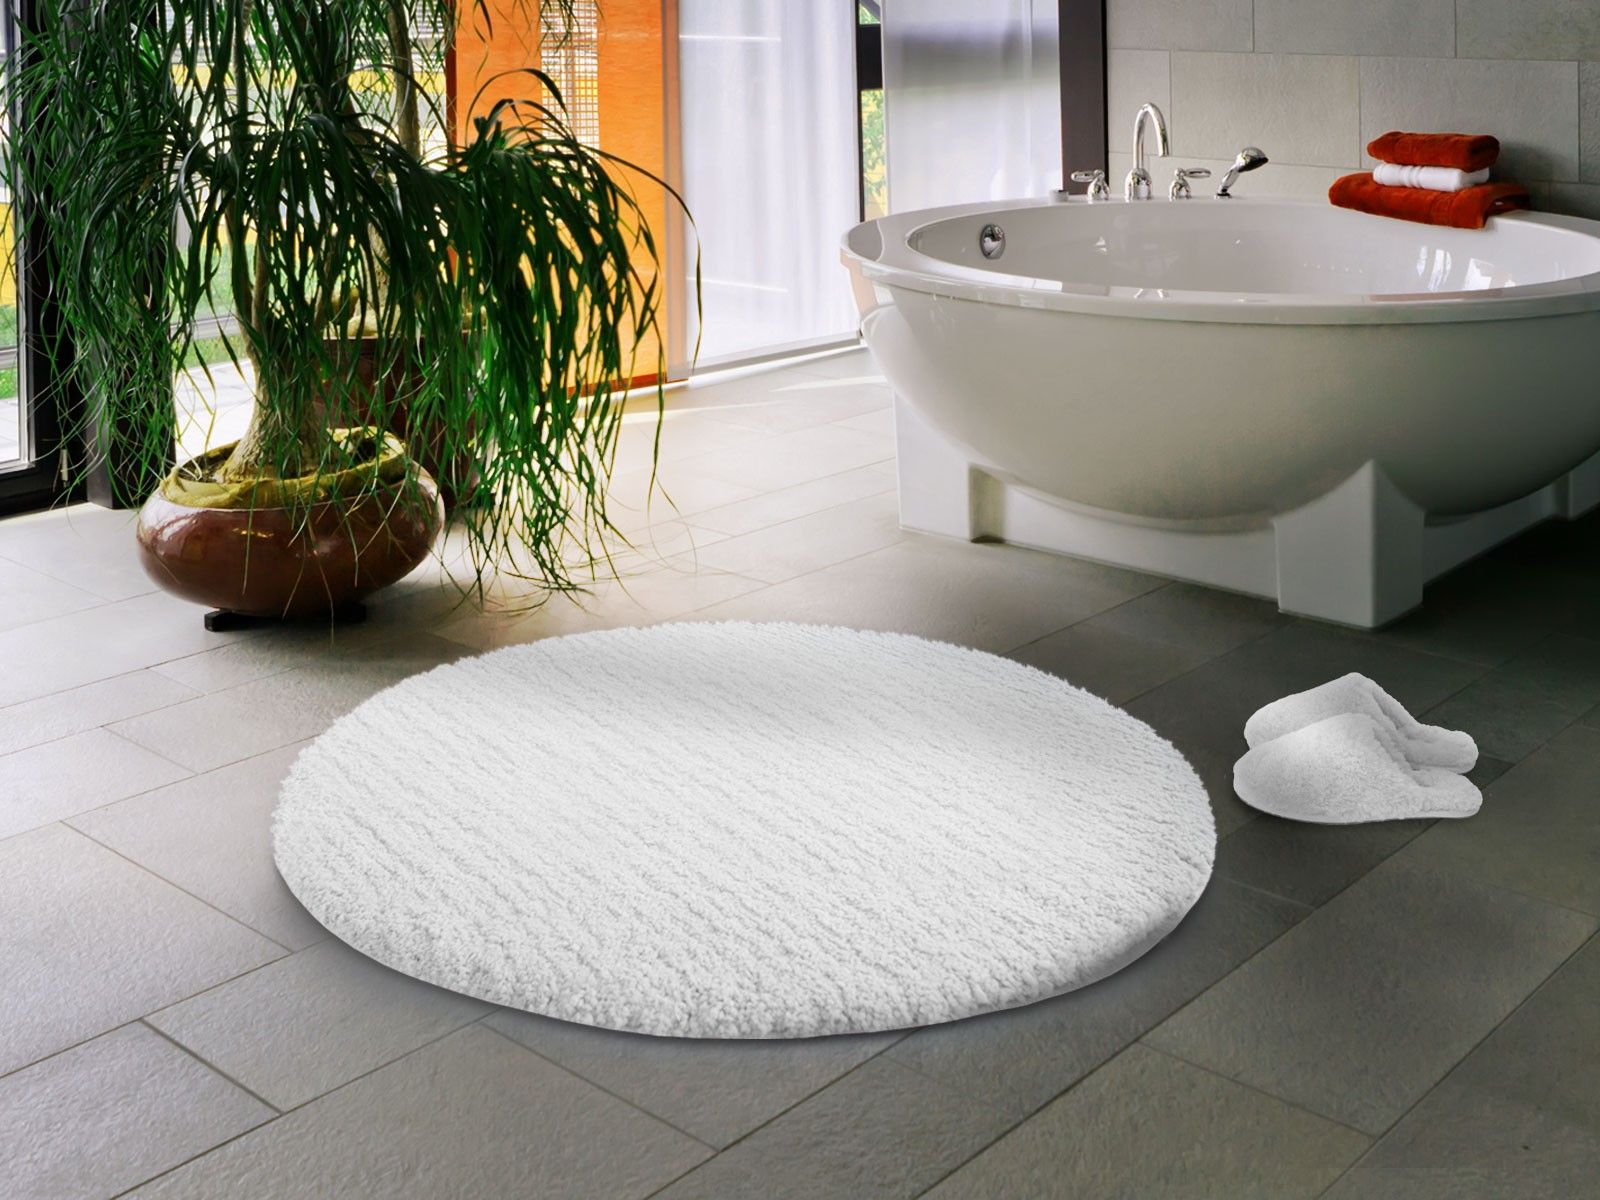 High Quality Circle Bathroom Rugs 7 Small Round Bath Rug White Large Round Bathroom Rugs White Bathroom Rug Round Bathroom Rugs